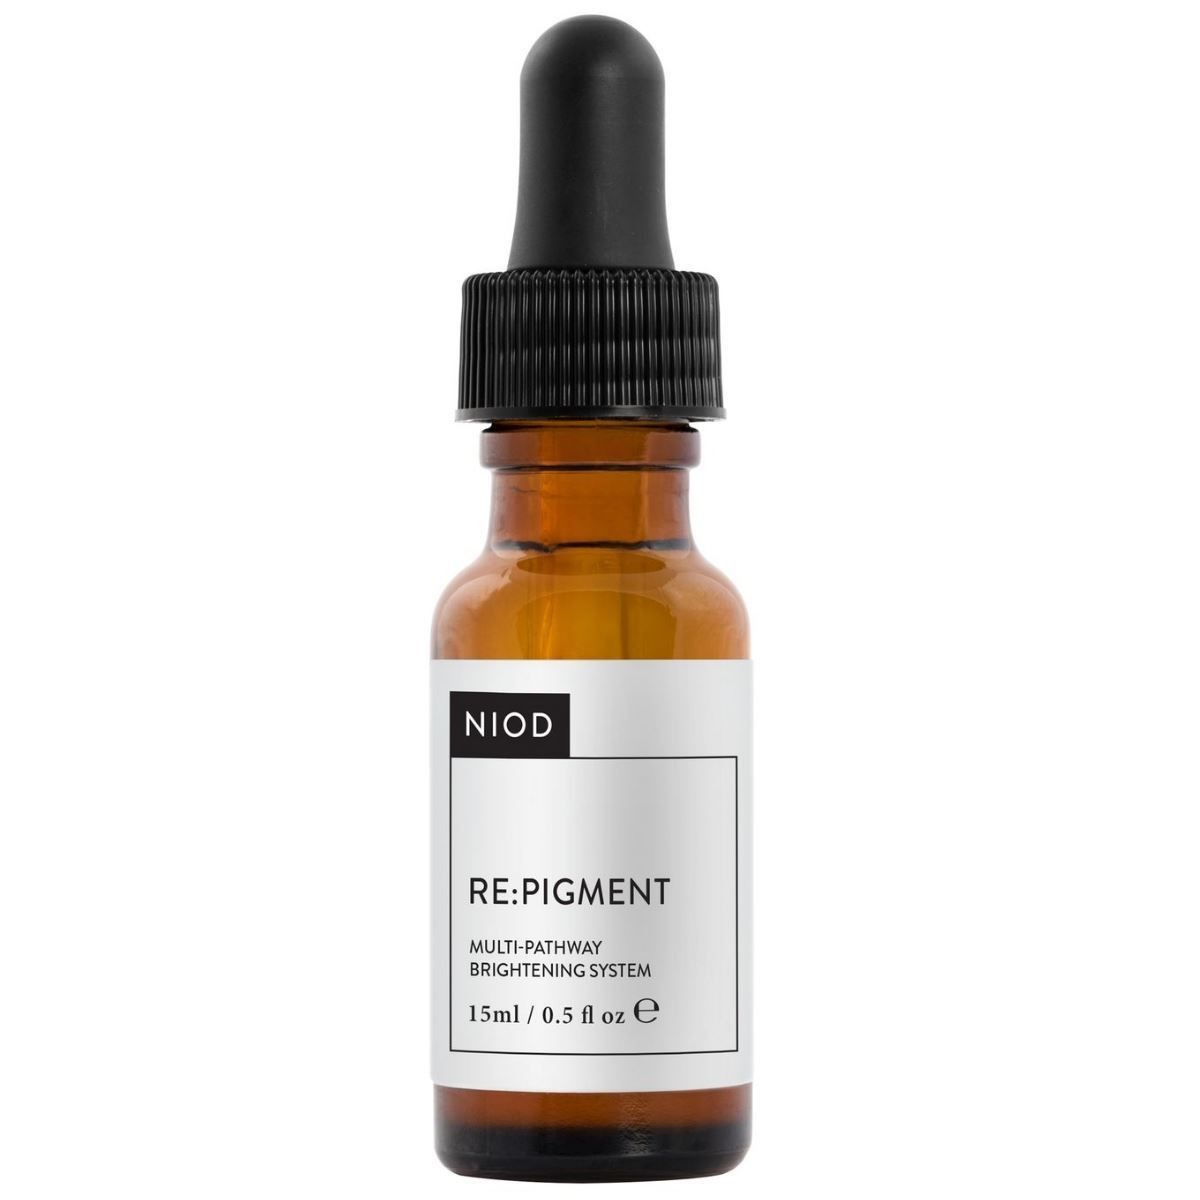 RE: PIGMENT Multi-Pathway Brightening System